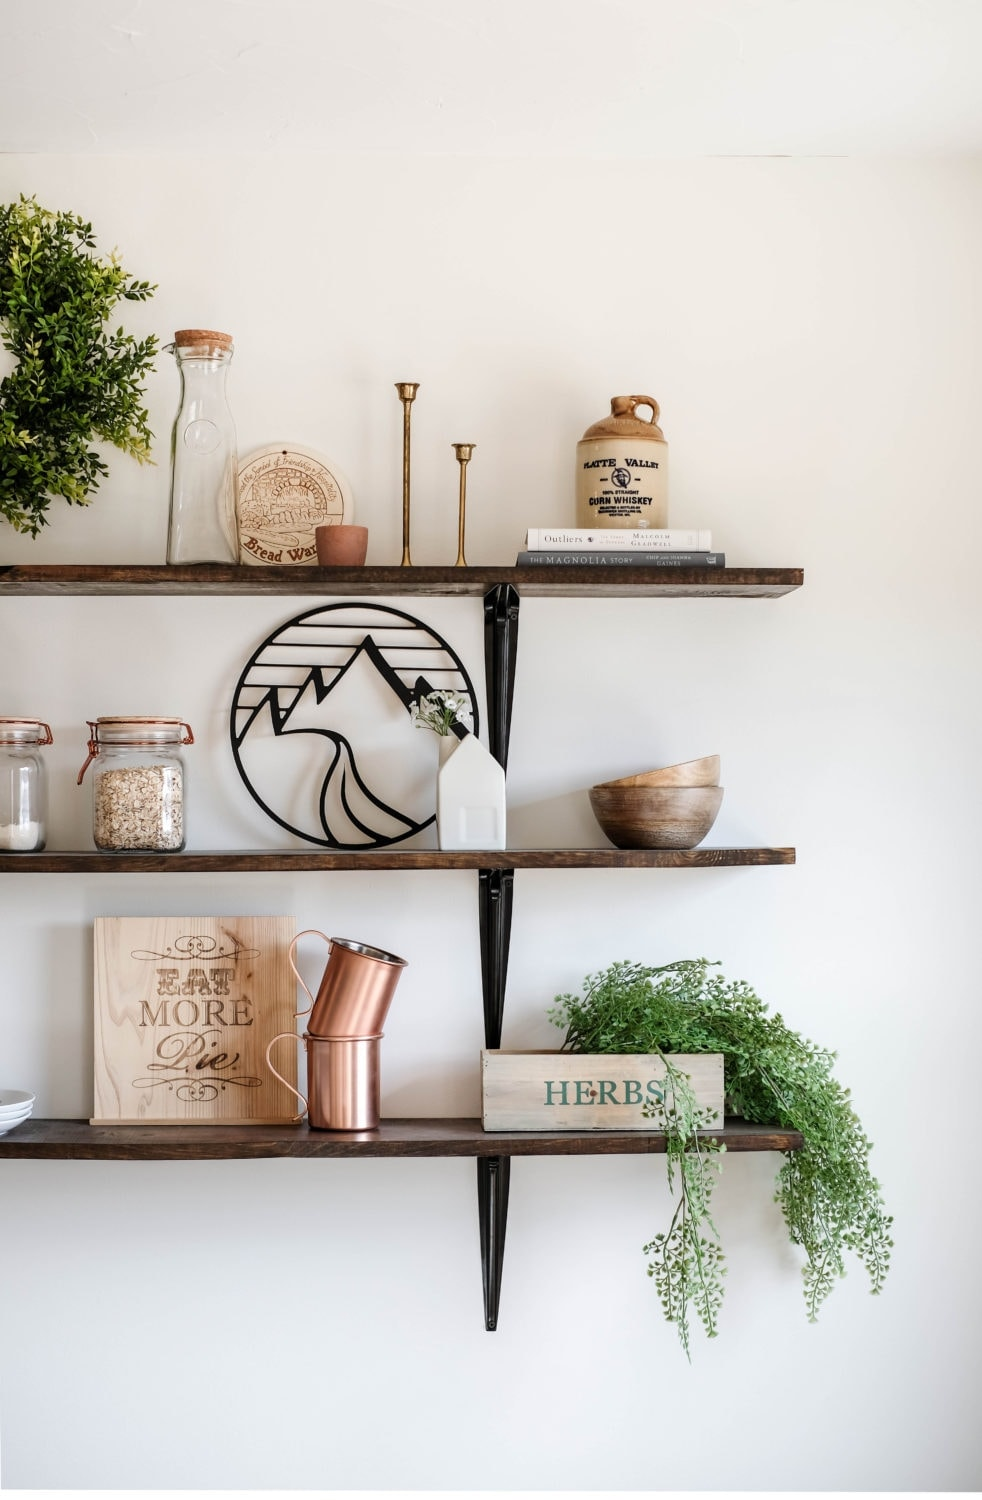 dining room shelves decorated with herbs, cups and bowls